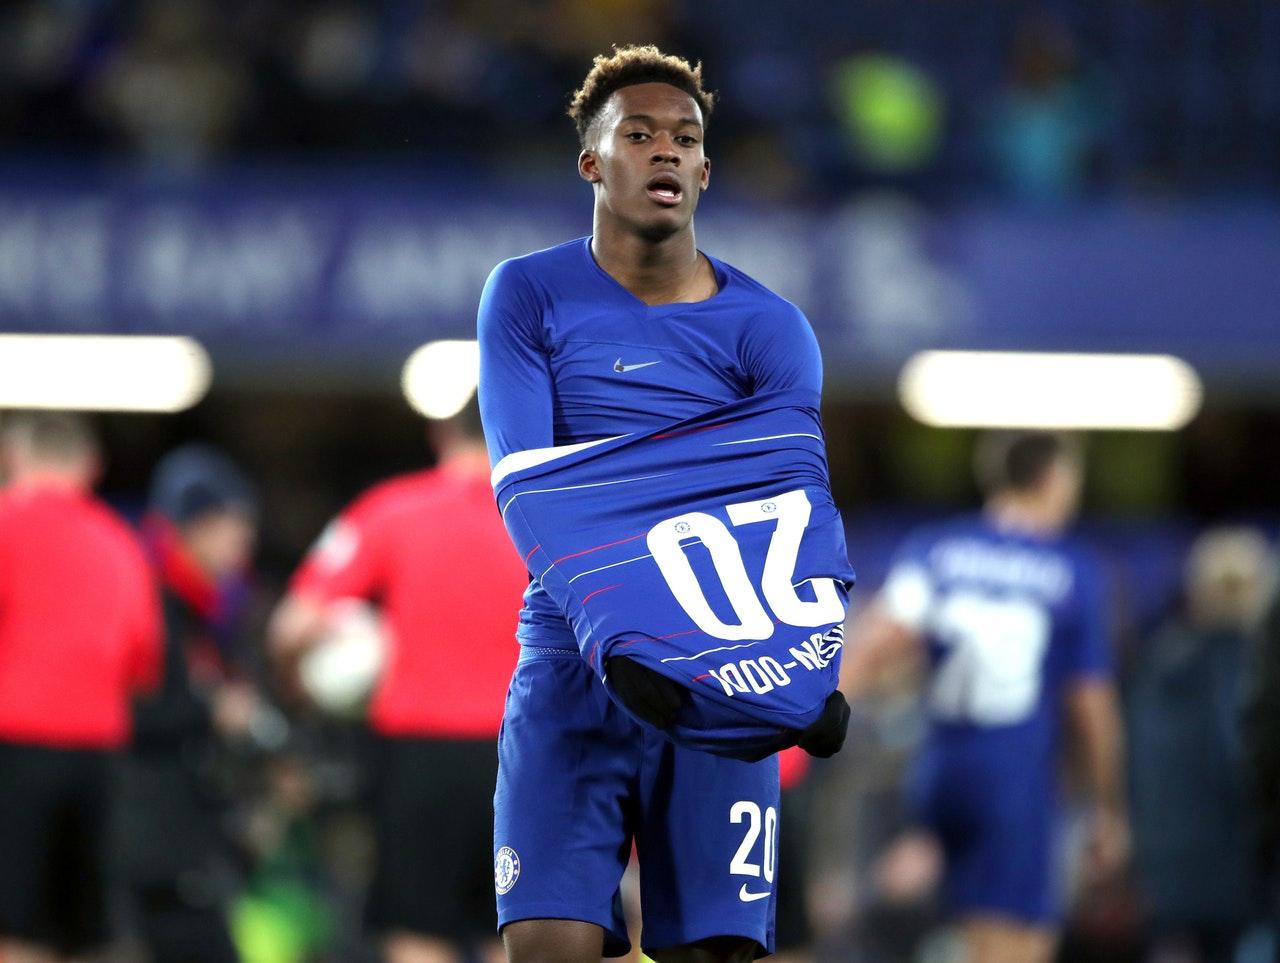 Zola Wants Youngstar To Stay